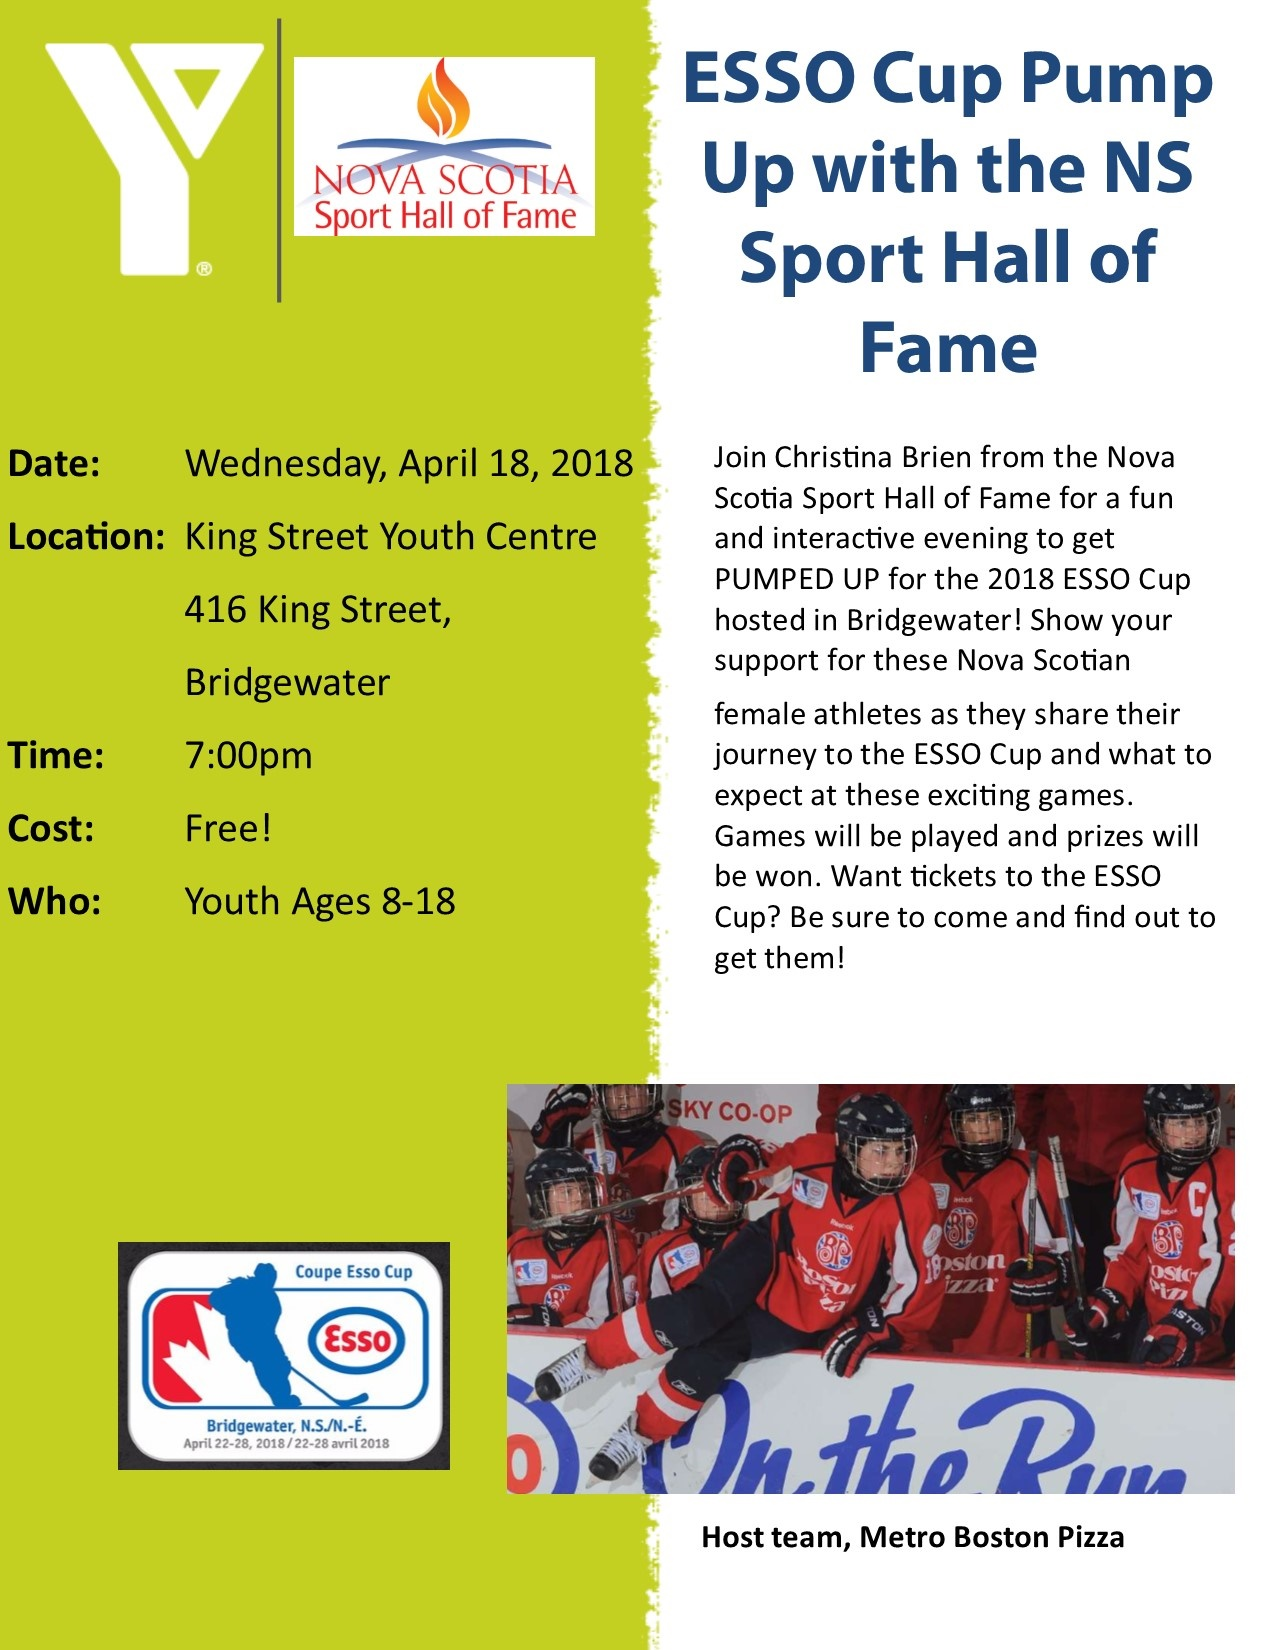 ESSO Cup Pump Up with the NS Sport Hall of Fame